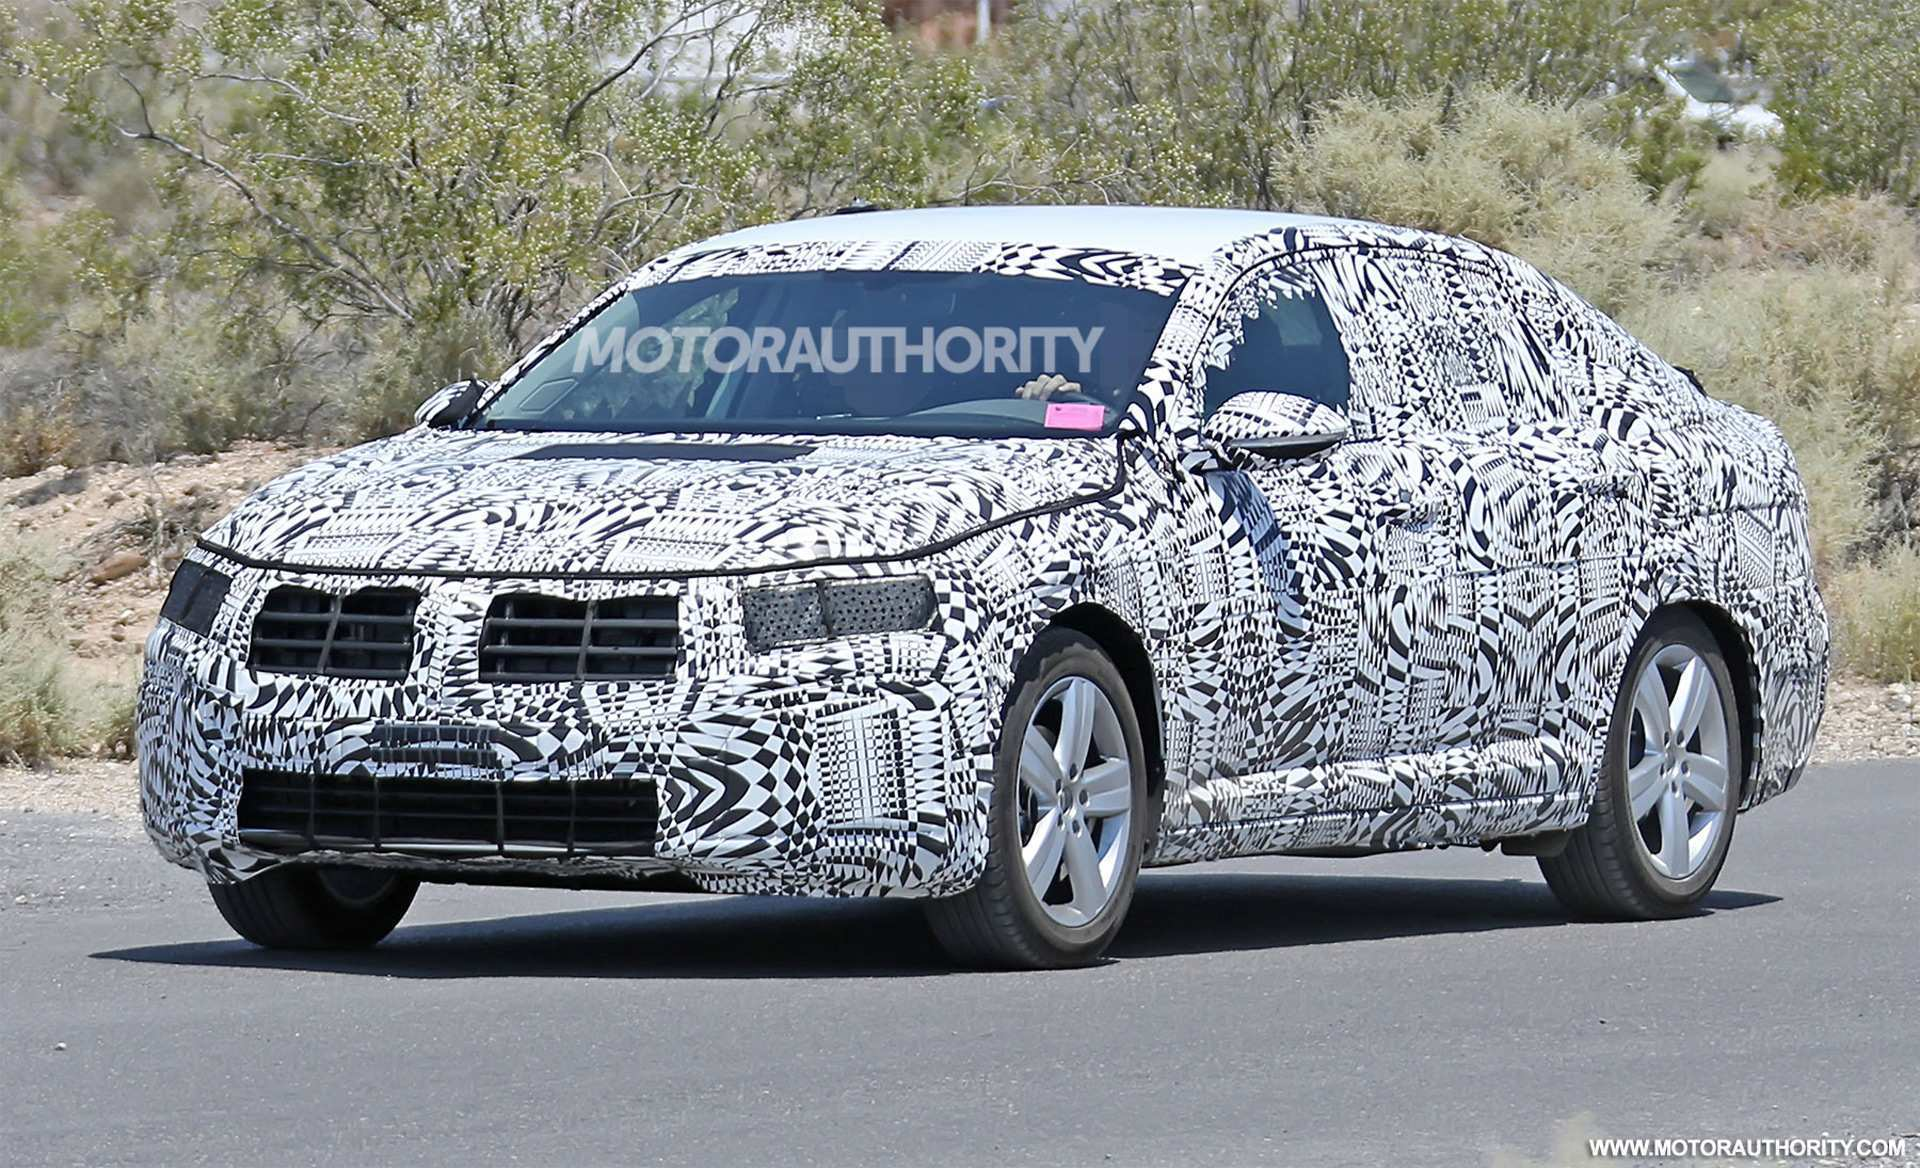 40 New 2019 Jetta Spy Shots Overview by 2019 Jetta Spy Shots